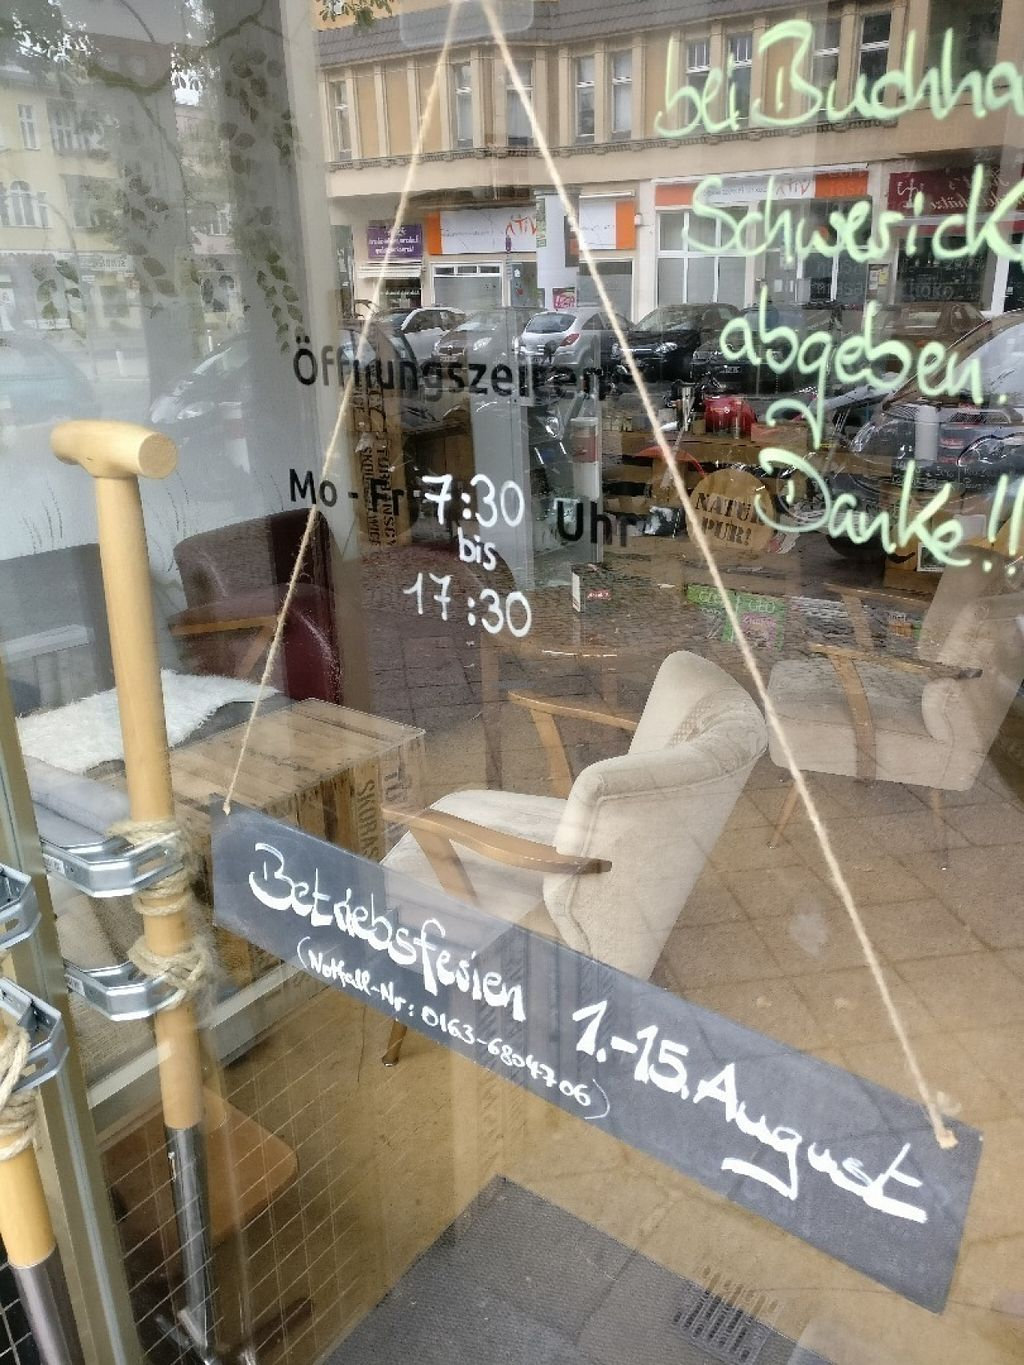 """Photo of Kawa Cafe-Deli  by <a href=""""/members/profile/kalina8877"""">kalina8877</a> <br/>Updated open hours + owner's holiday  <br/> August 2, 2016  - <a href='/contact/abuse/image/58433/164440'>Report</a>"""